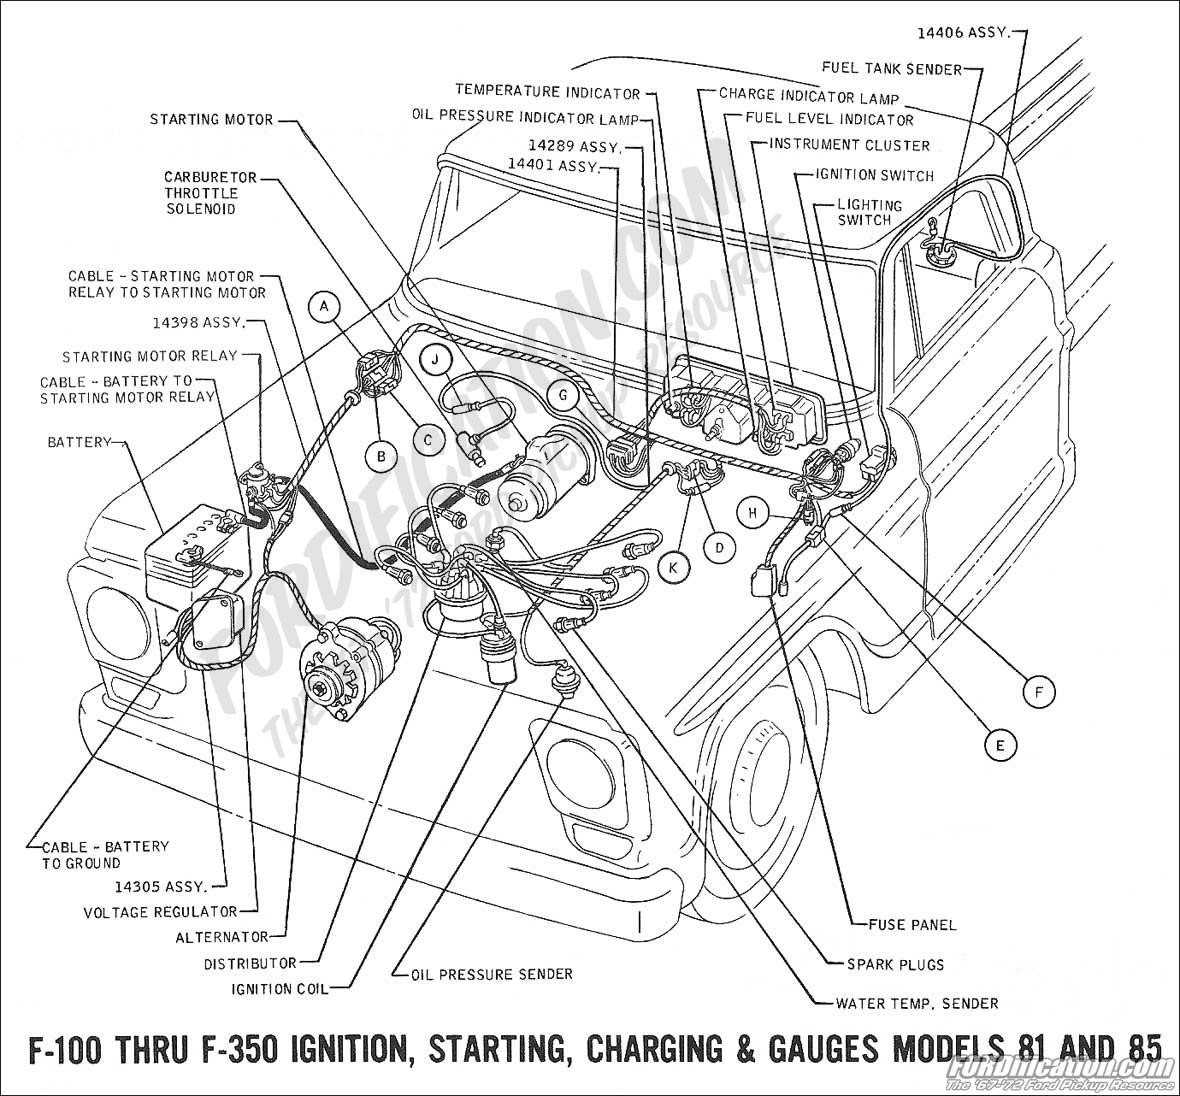 wiring 1969charging ford truck technical drawings and schematics section h wiring 1969 ford f100 wiring diagram at creativeand.co